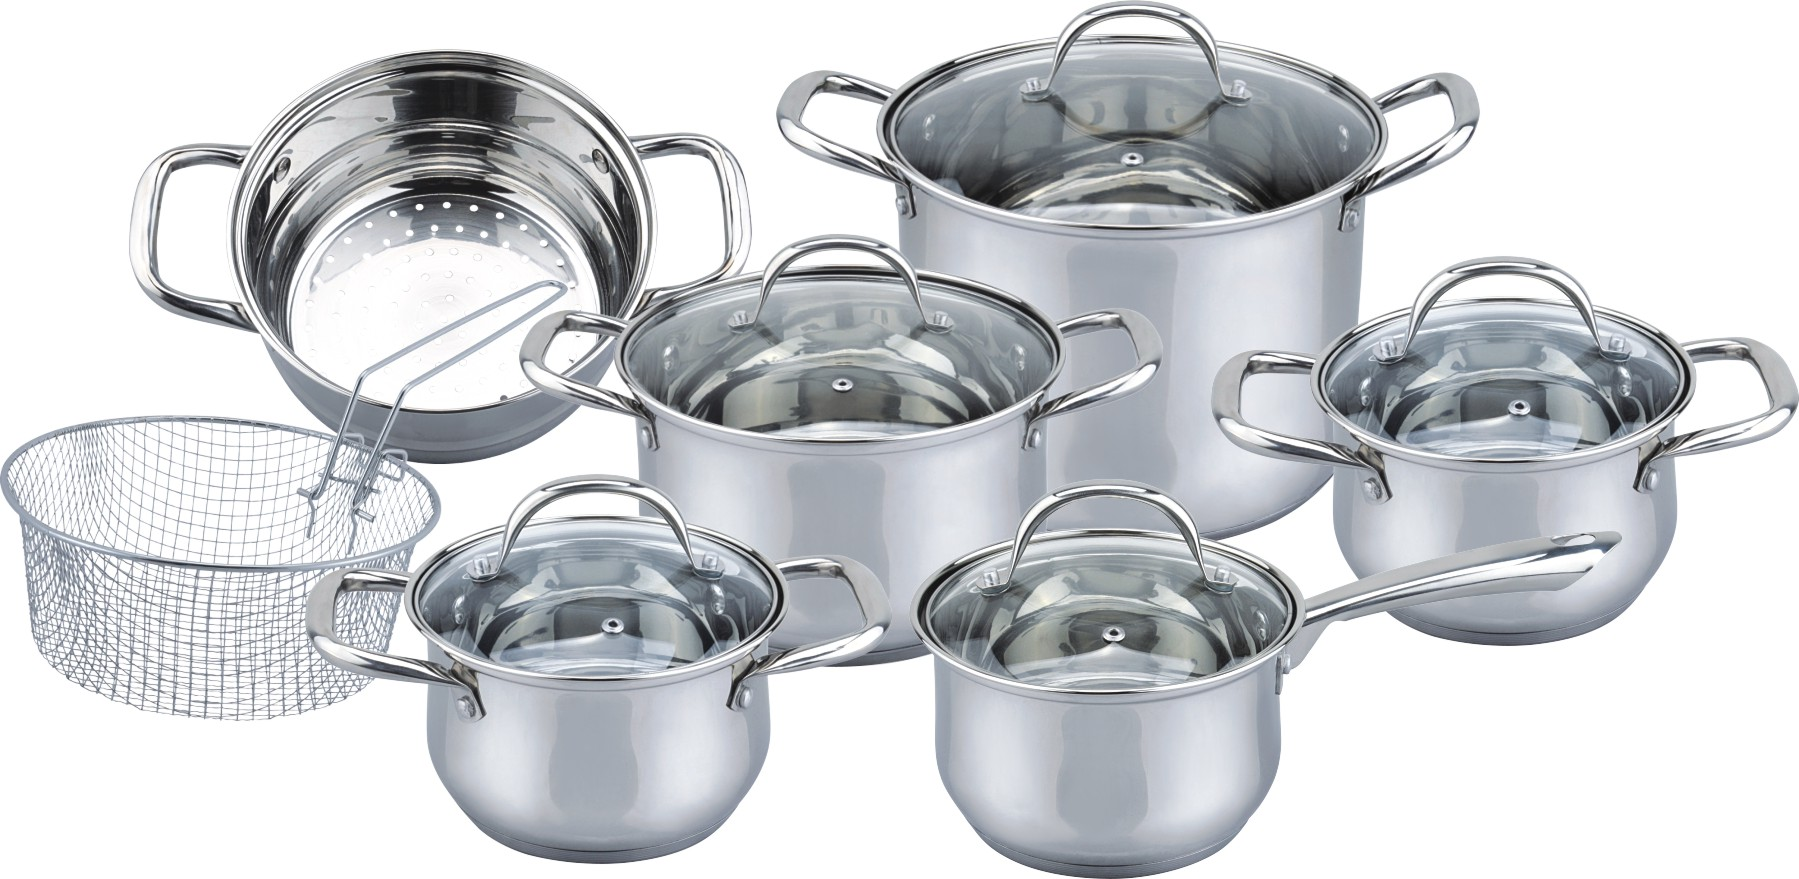 Special 12pcs stainless steel cookware set